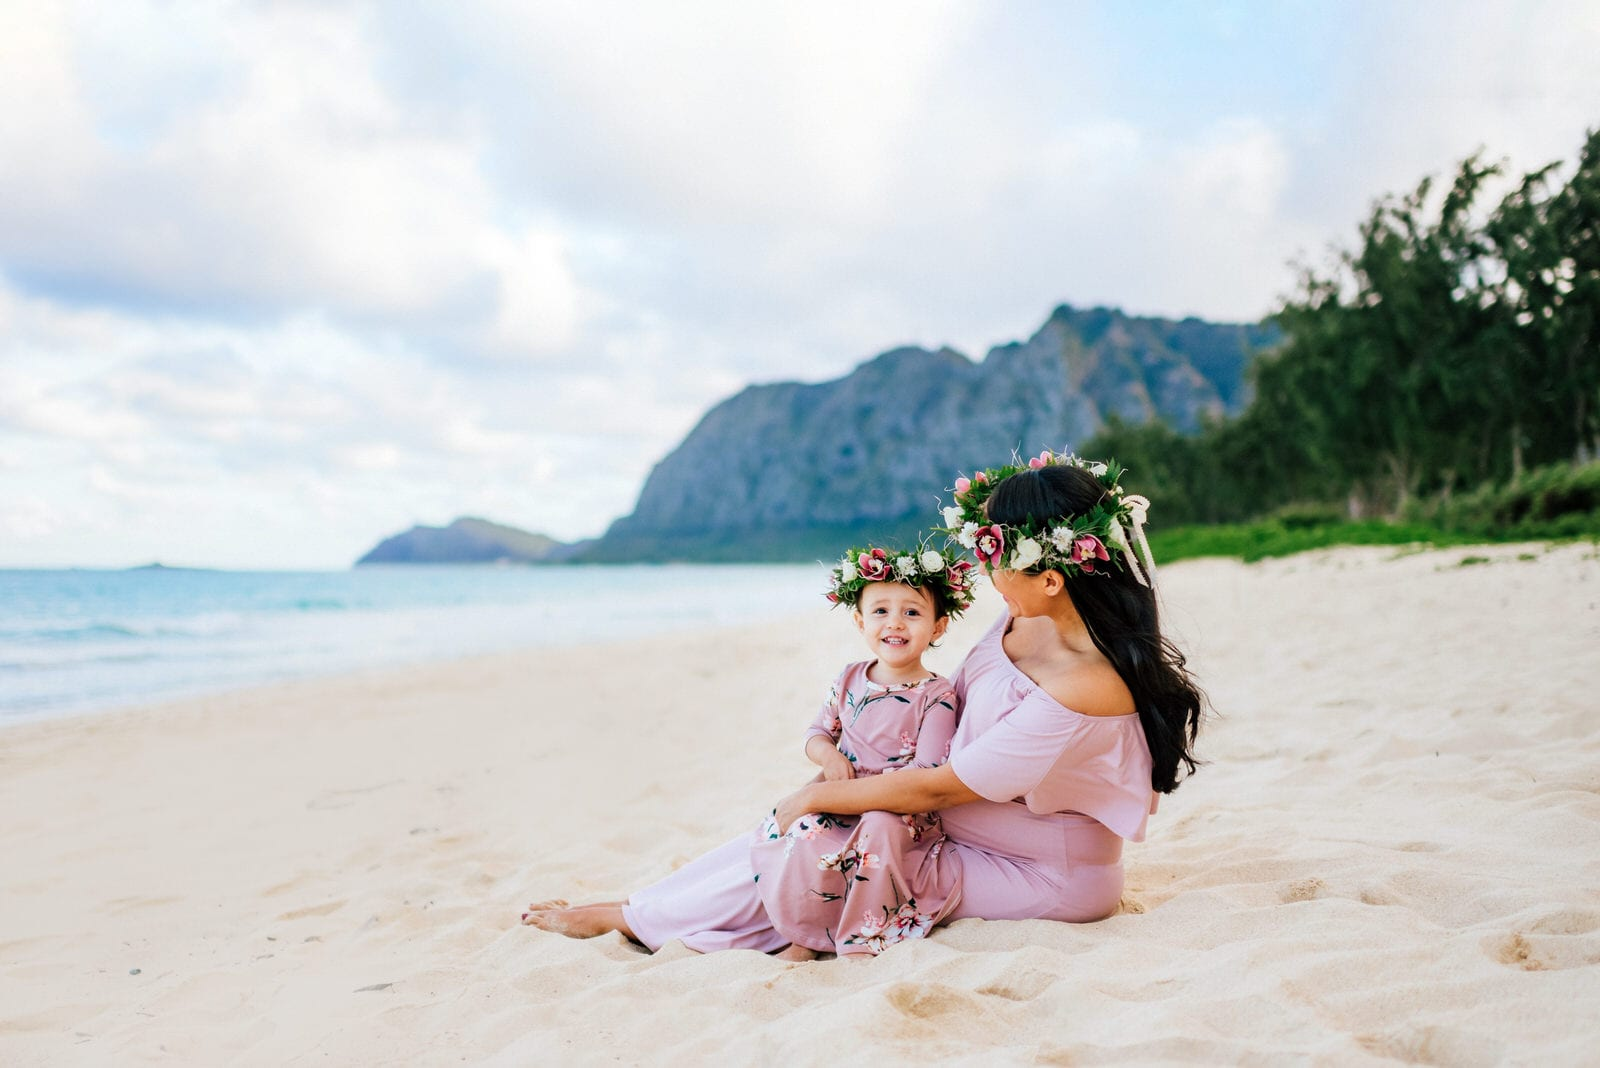 Oahu-Maternity-Photographer-Love-Haku-Flower-Crown-Water-1.jpg